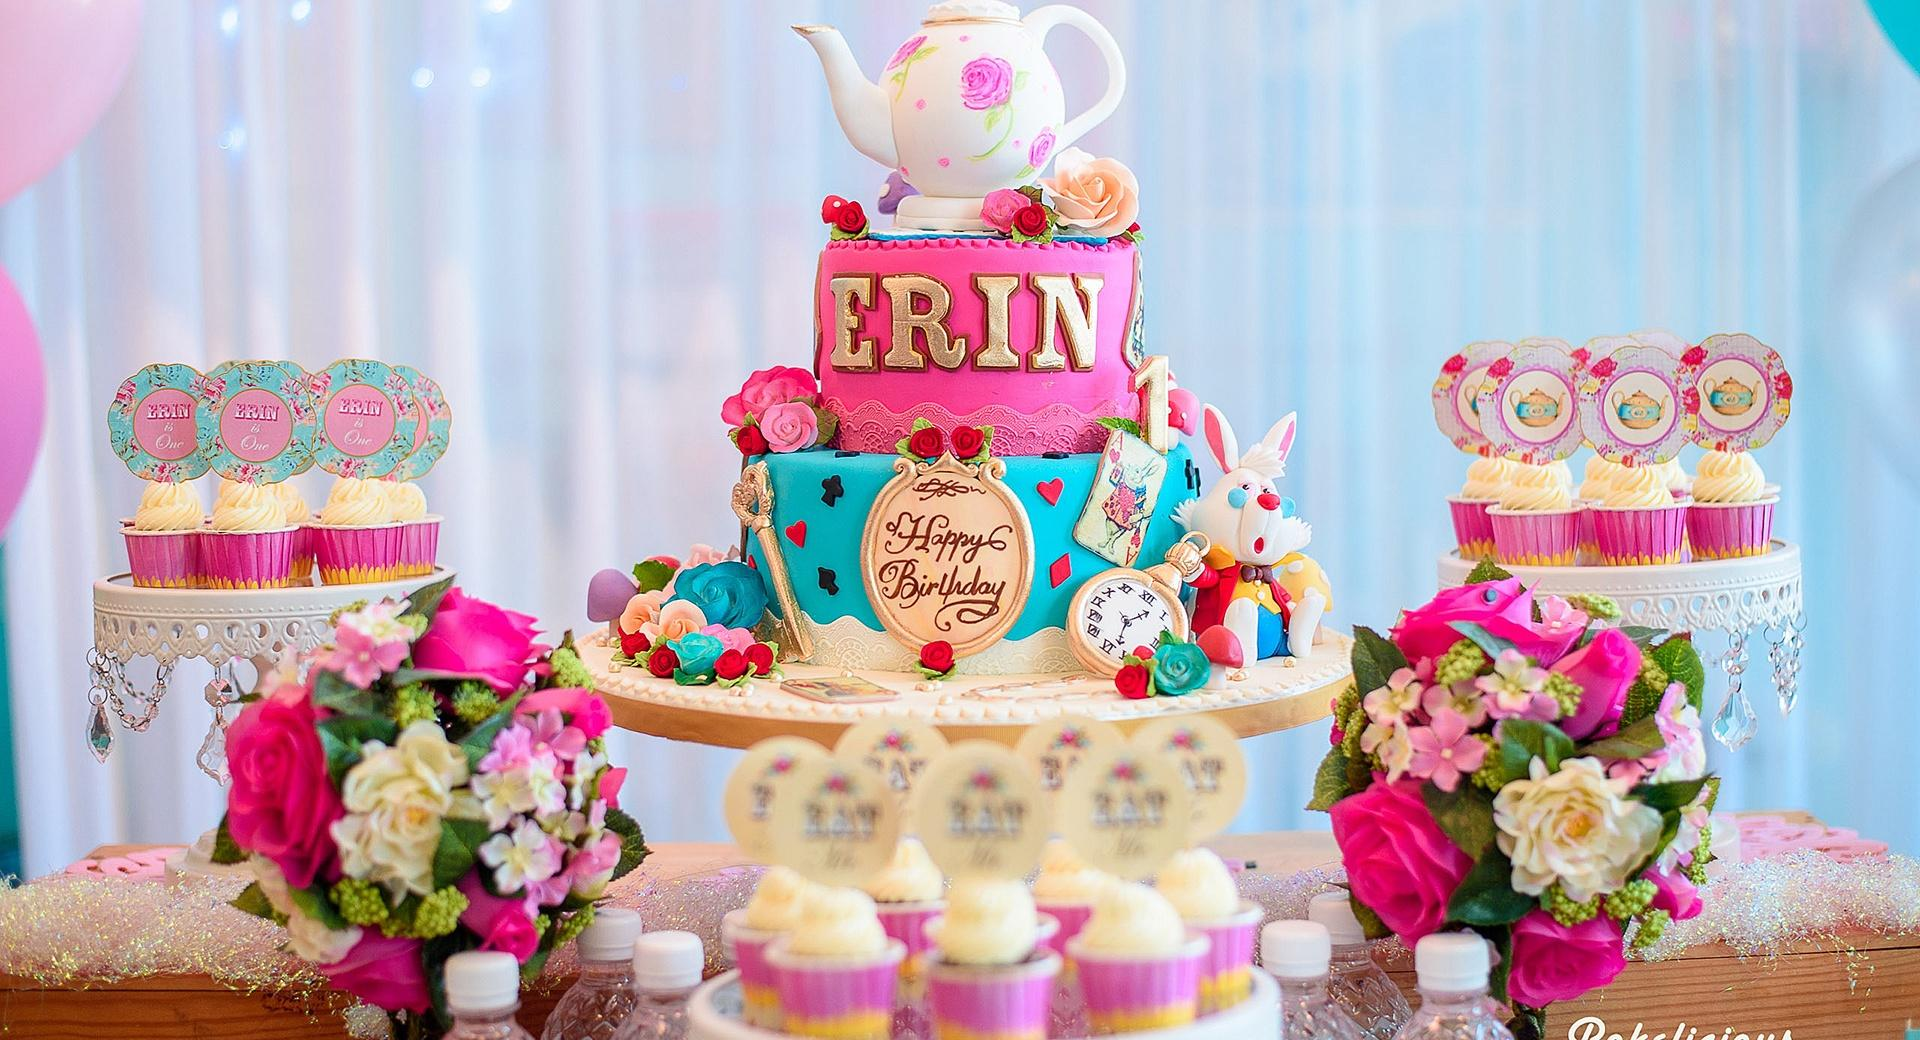 Birthday Party Cake and Cupcakes wallpapers HD quality